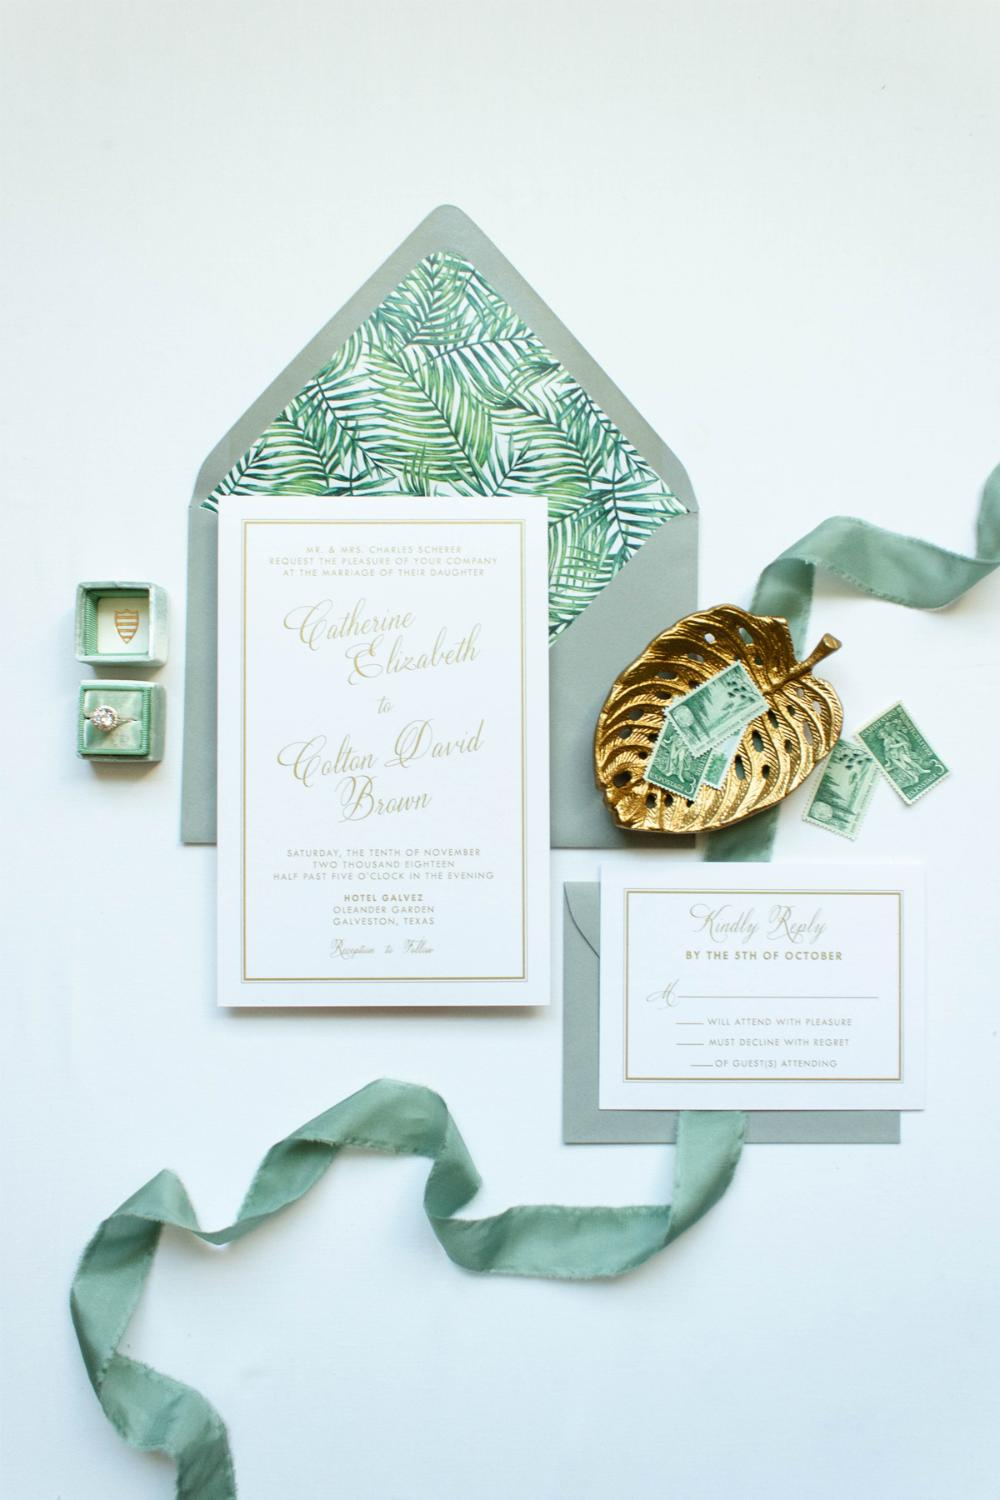 Tropical Beach Green Palm Tree Leaves in Classic Gold, White and Gray Wedding Invitation, RSVP & Address Printing